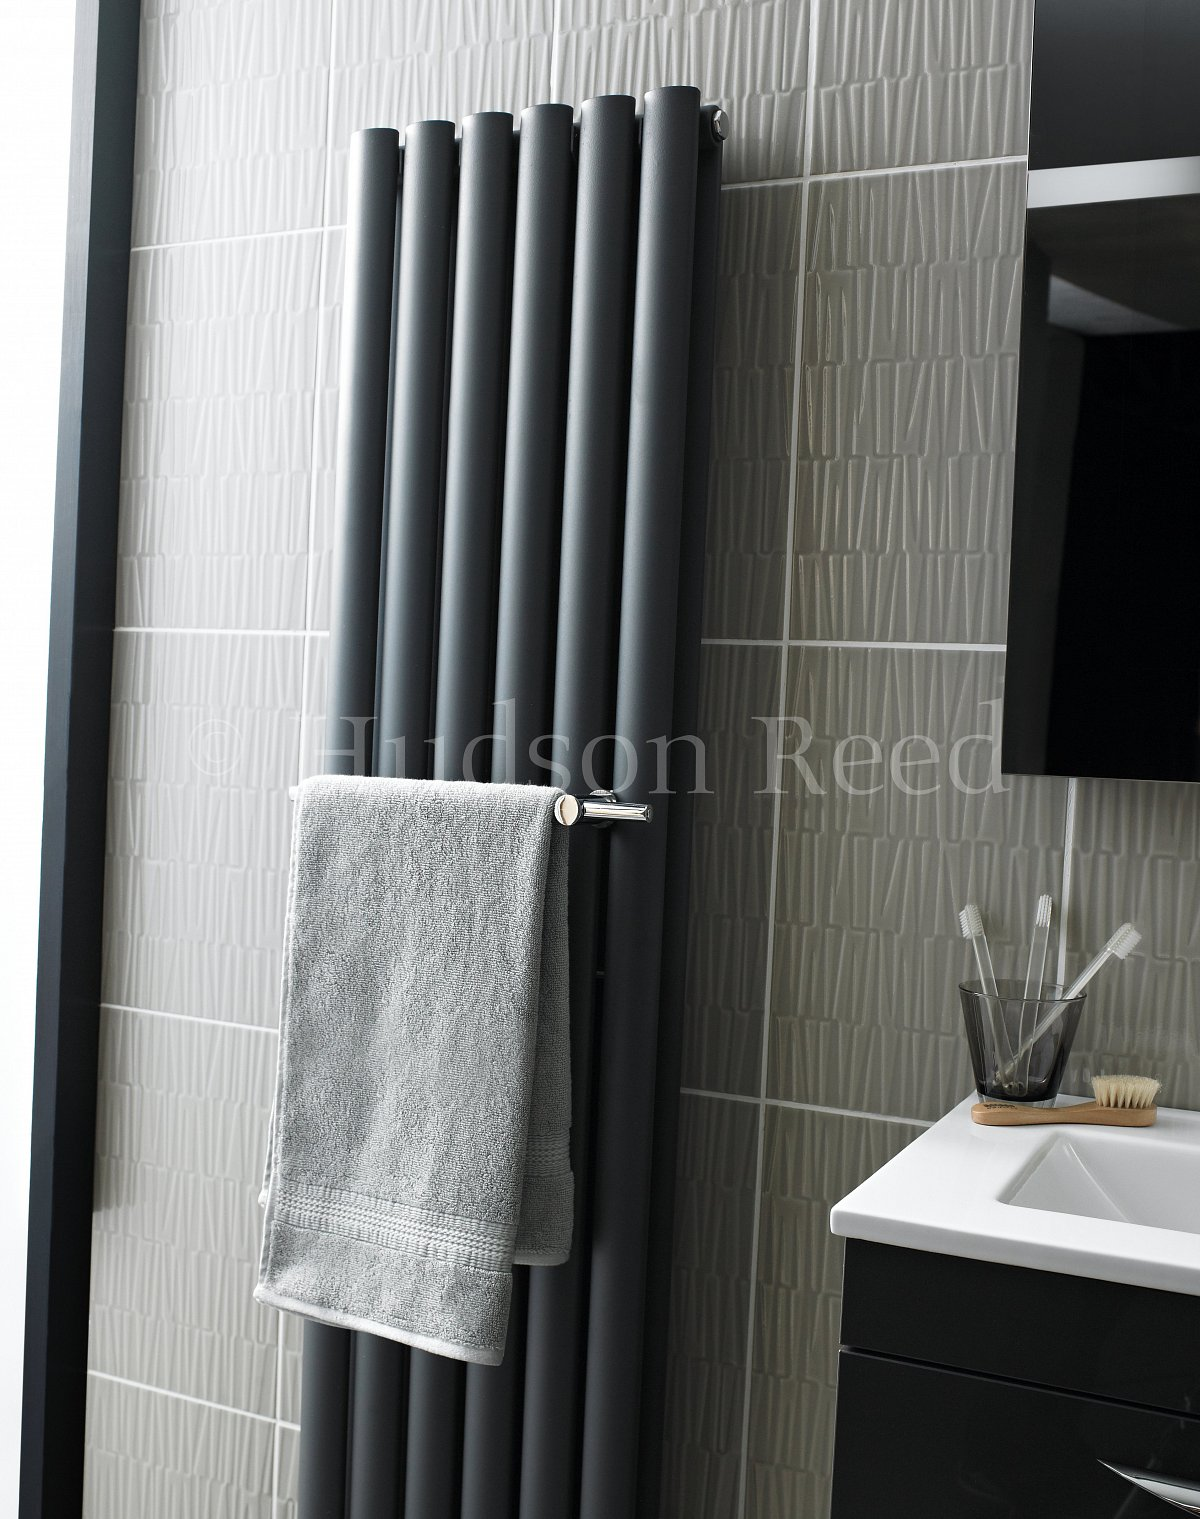 how to add towel rails on tiles